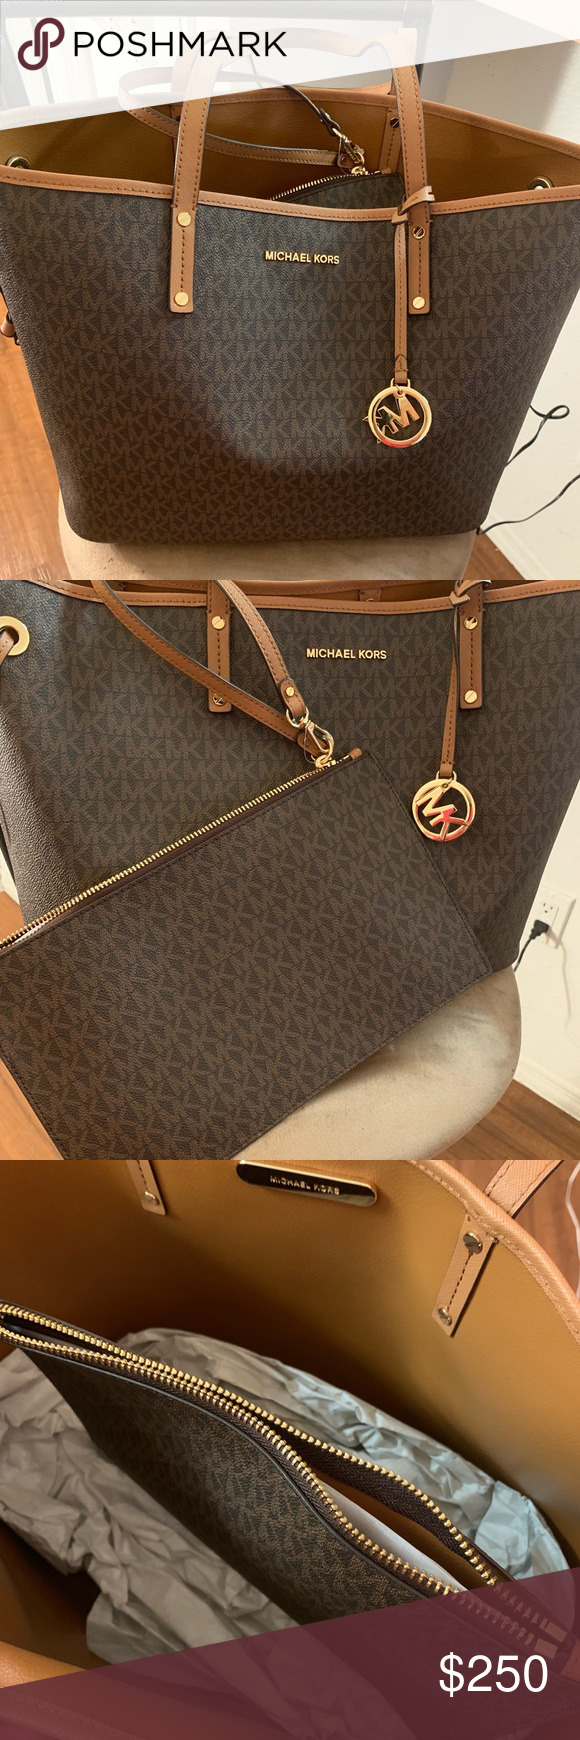 Brand New Michael Kors Bag With 1 Year